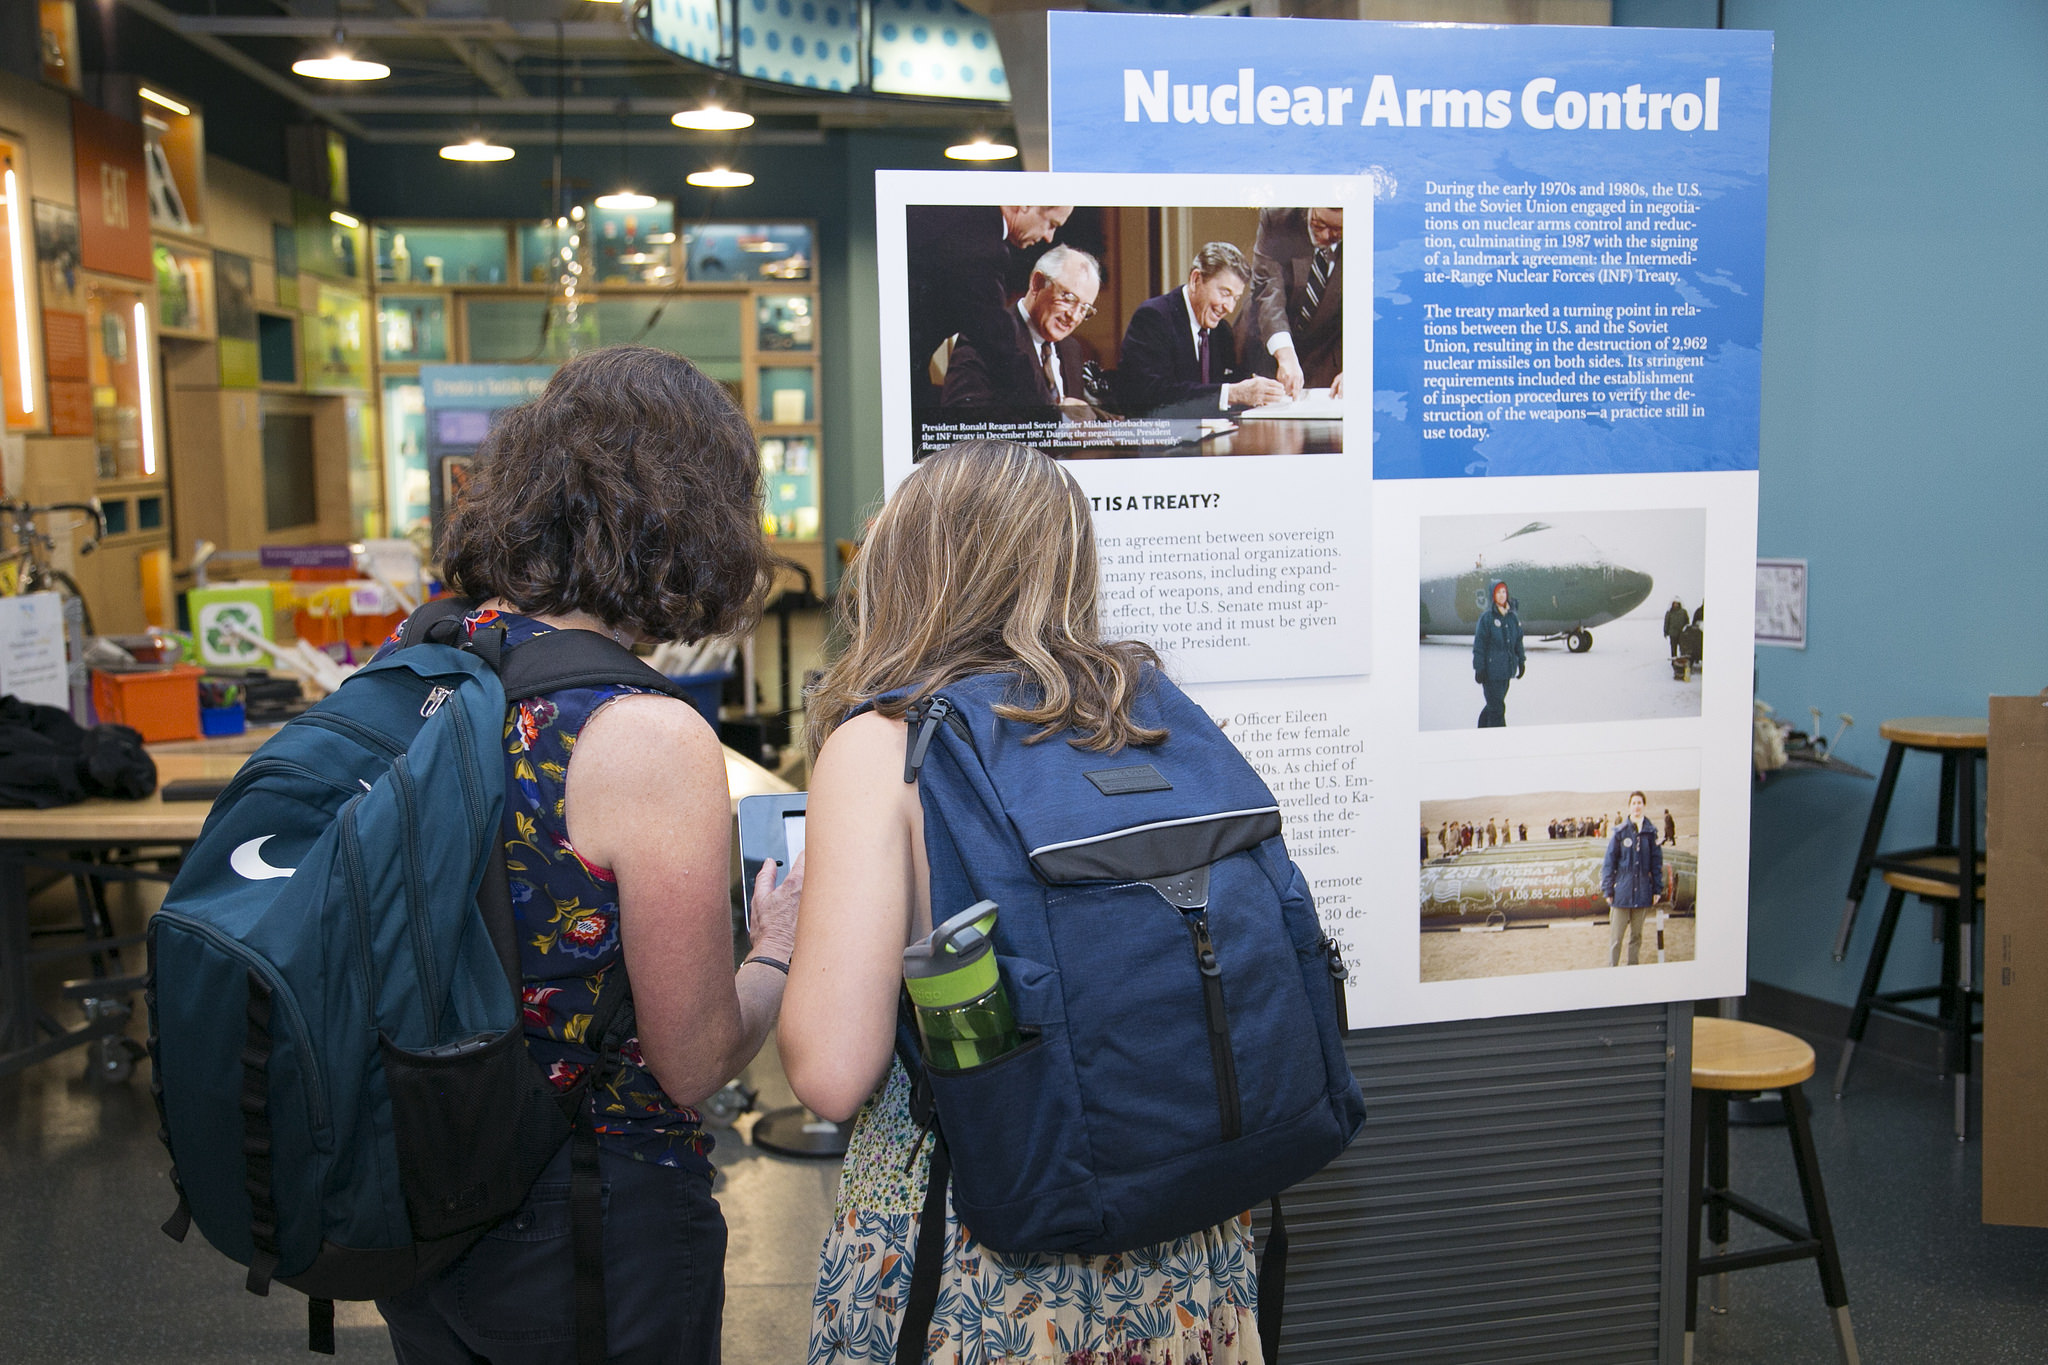 Two visitors observe an exhibit on Nuclear Arms